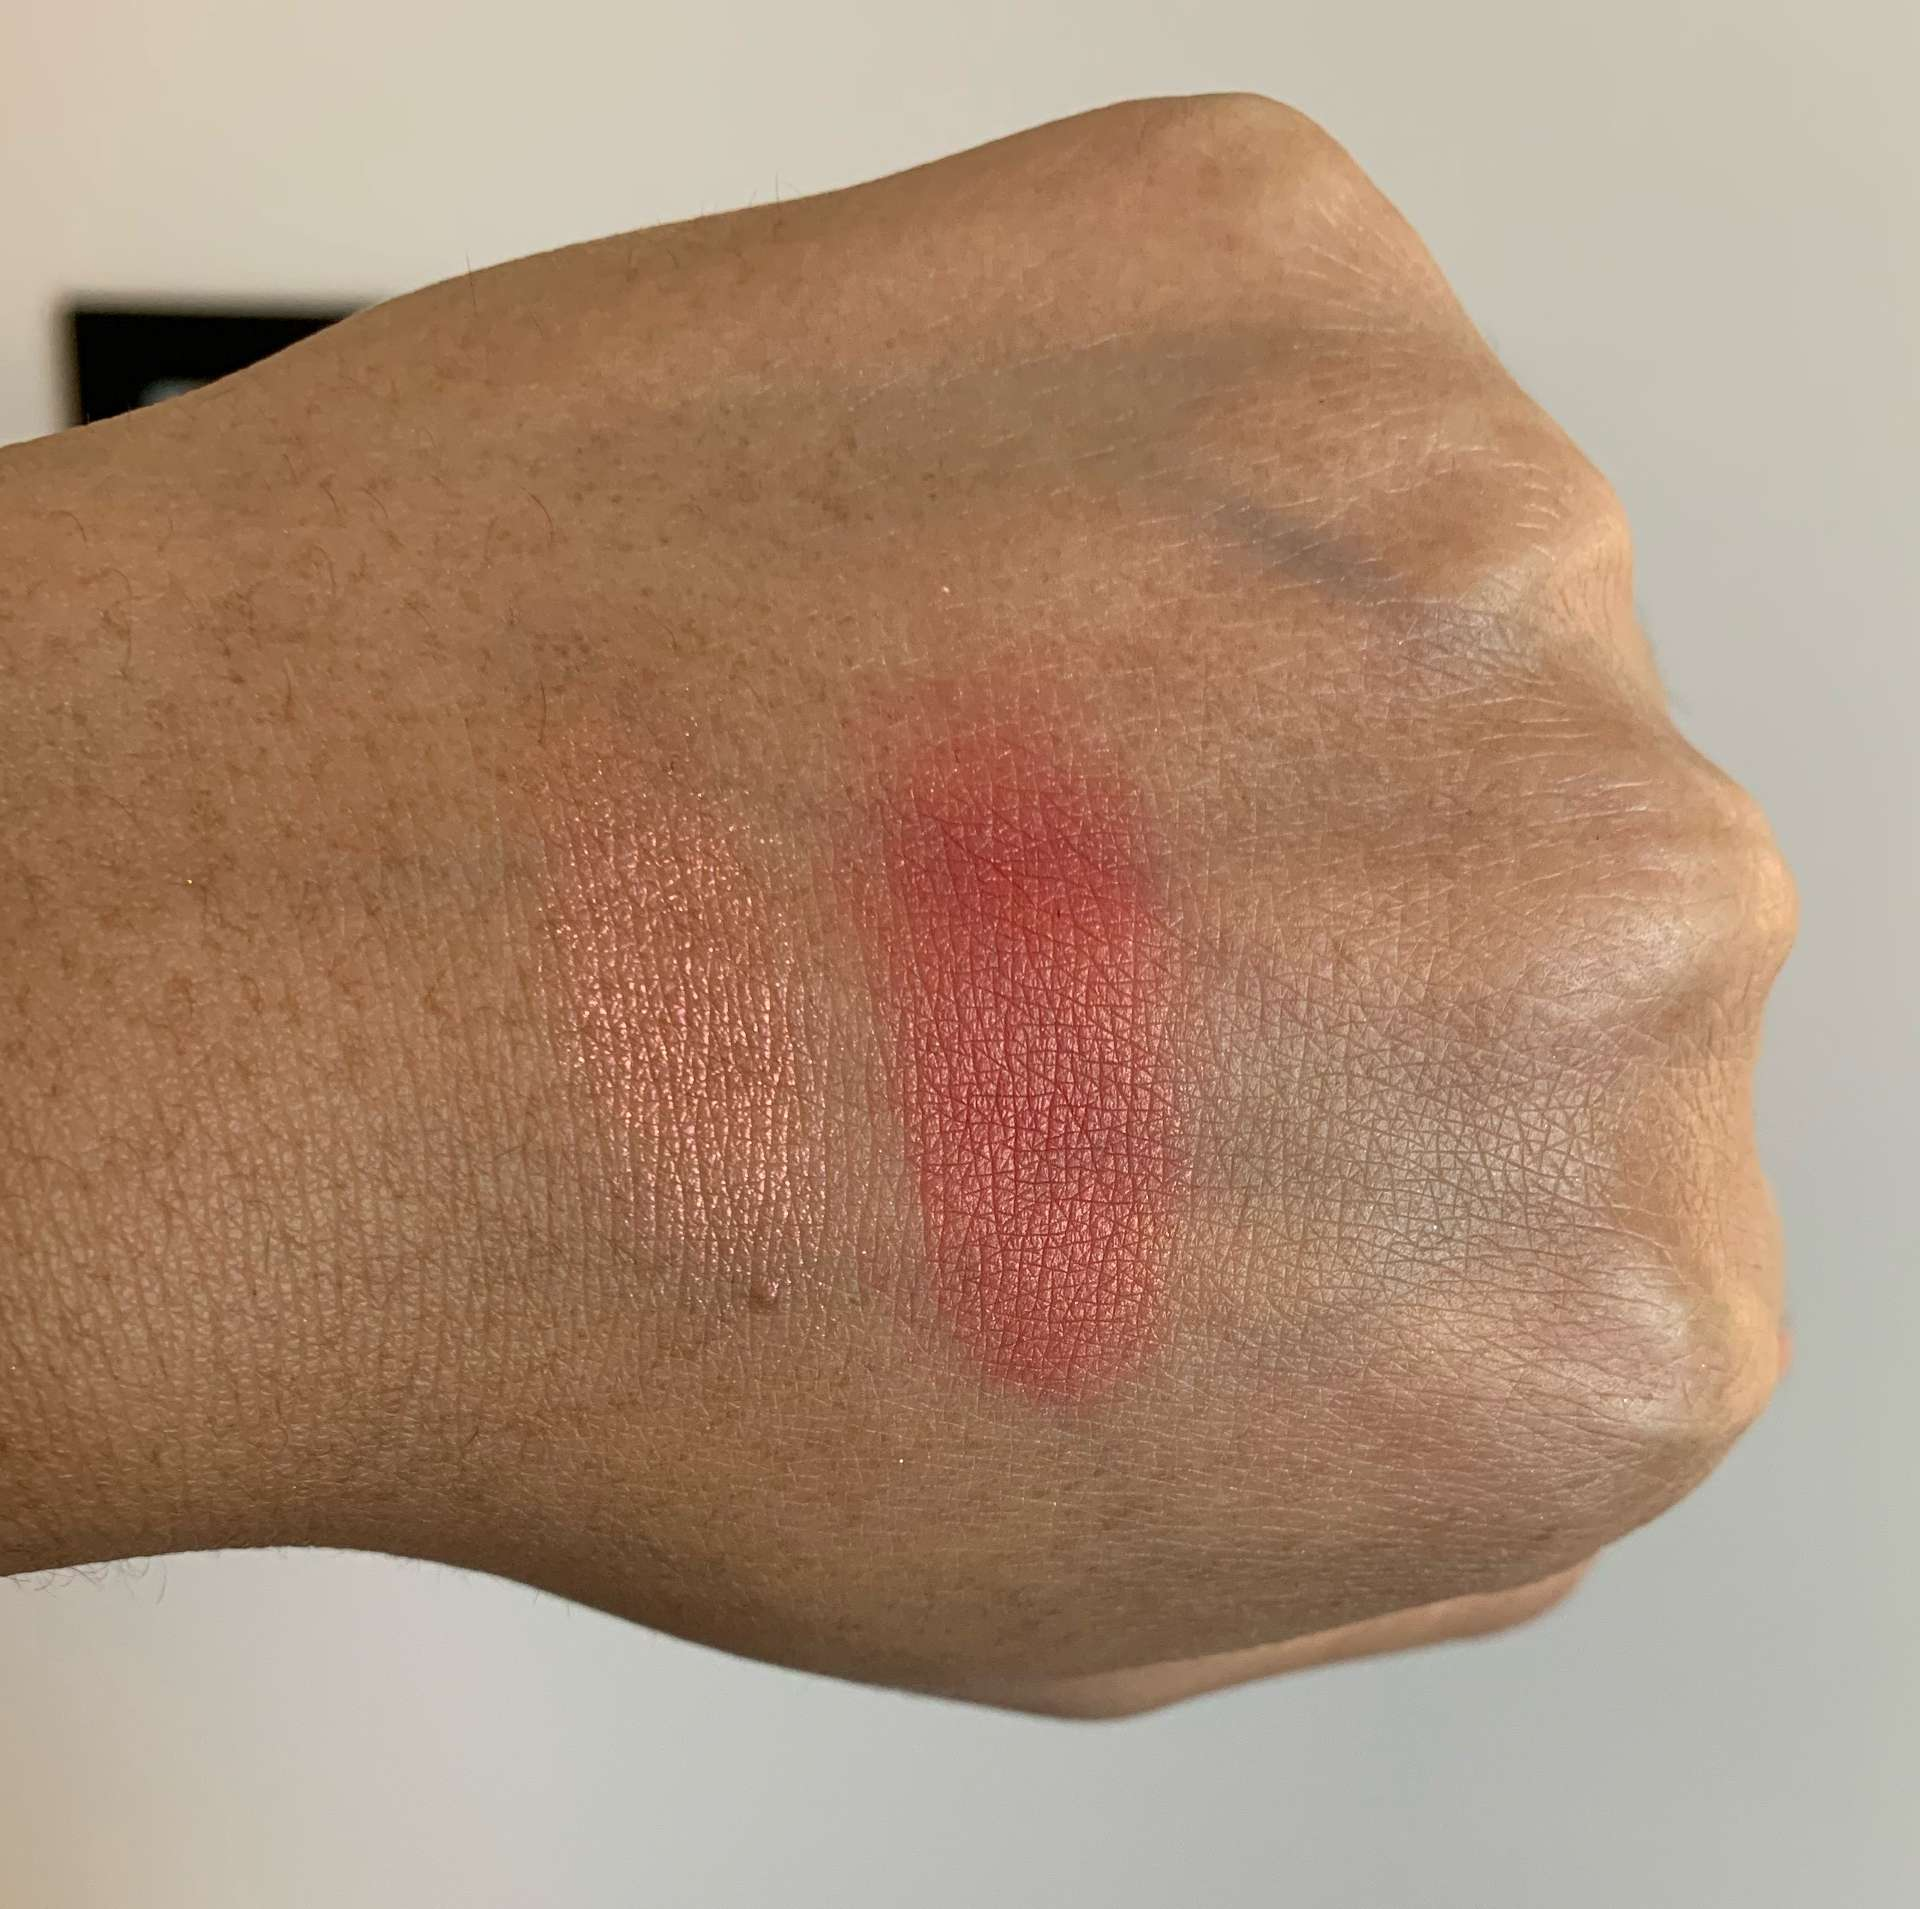 Coloured Raine Peach Loyalty (previously call the shots) Highlight and Blush Duo Swatches on Medium Dark Skin